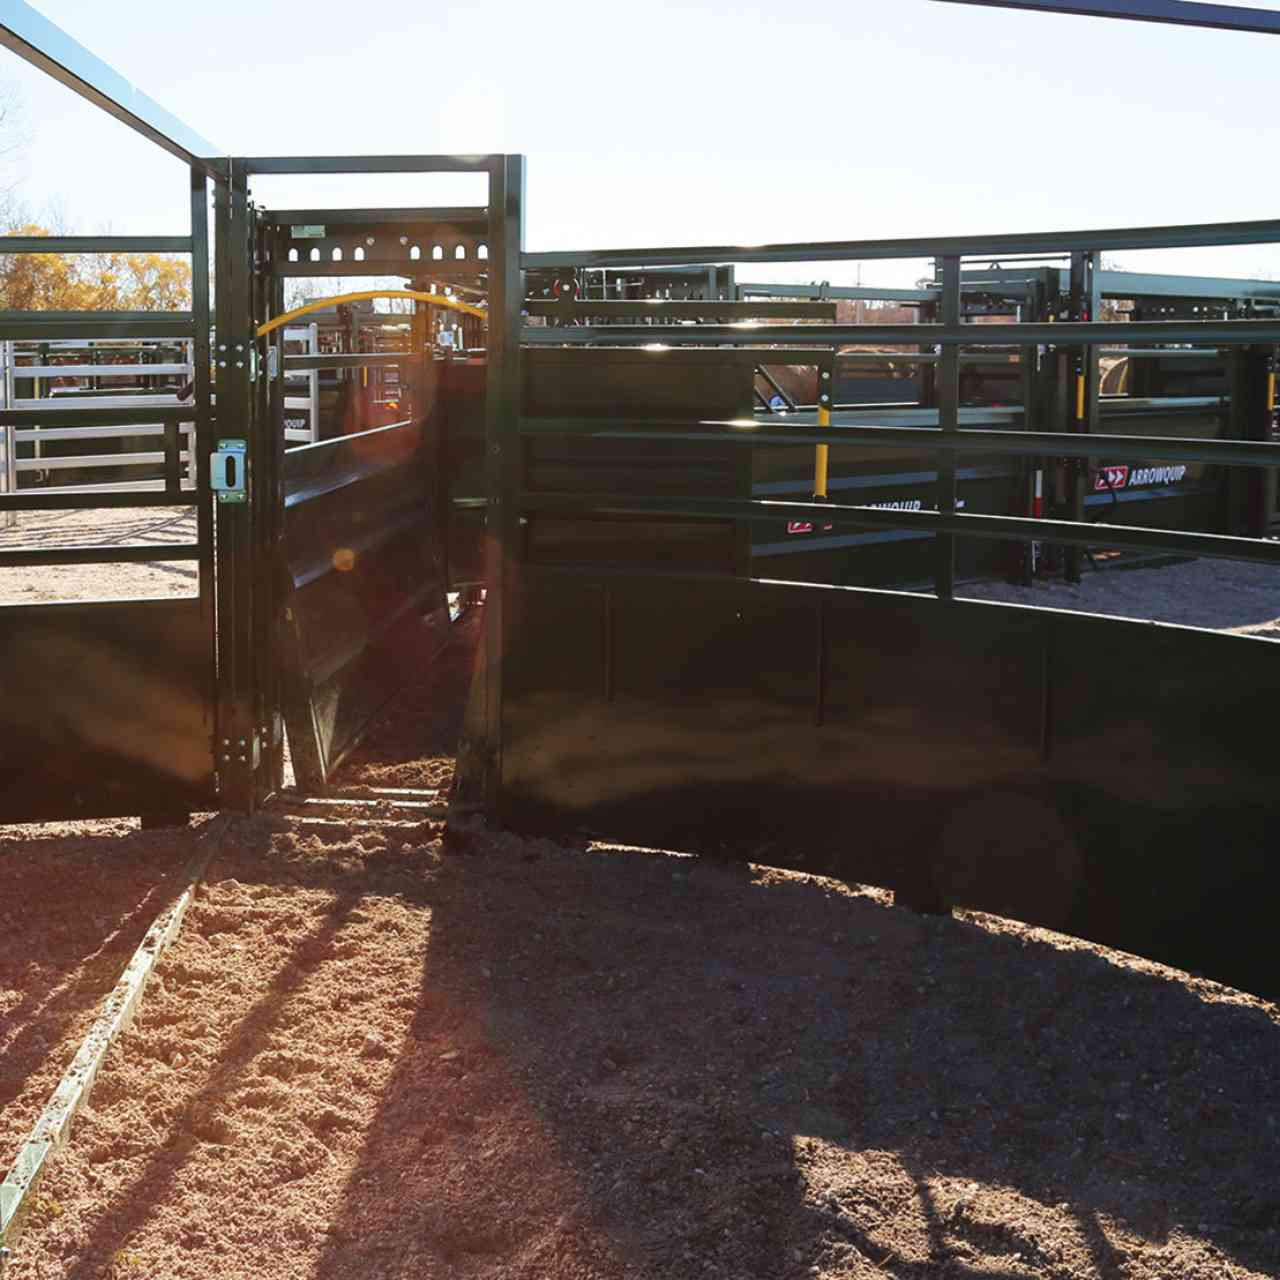 Low sheeted cattle tub panels bring more light into the handling system